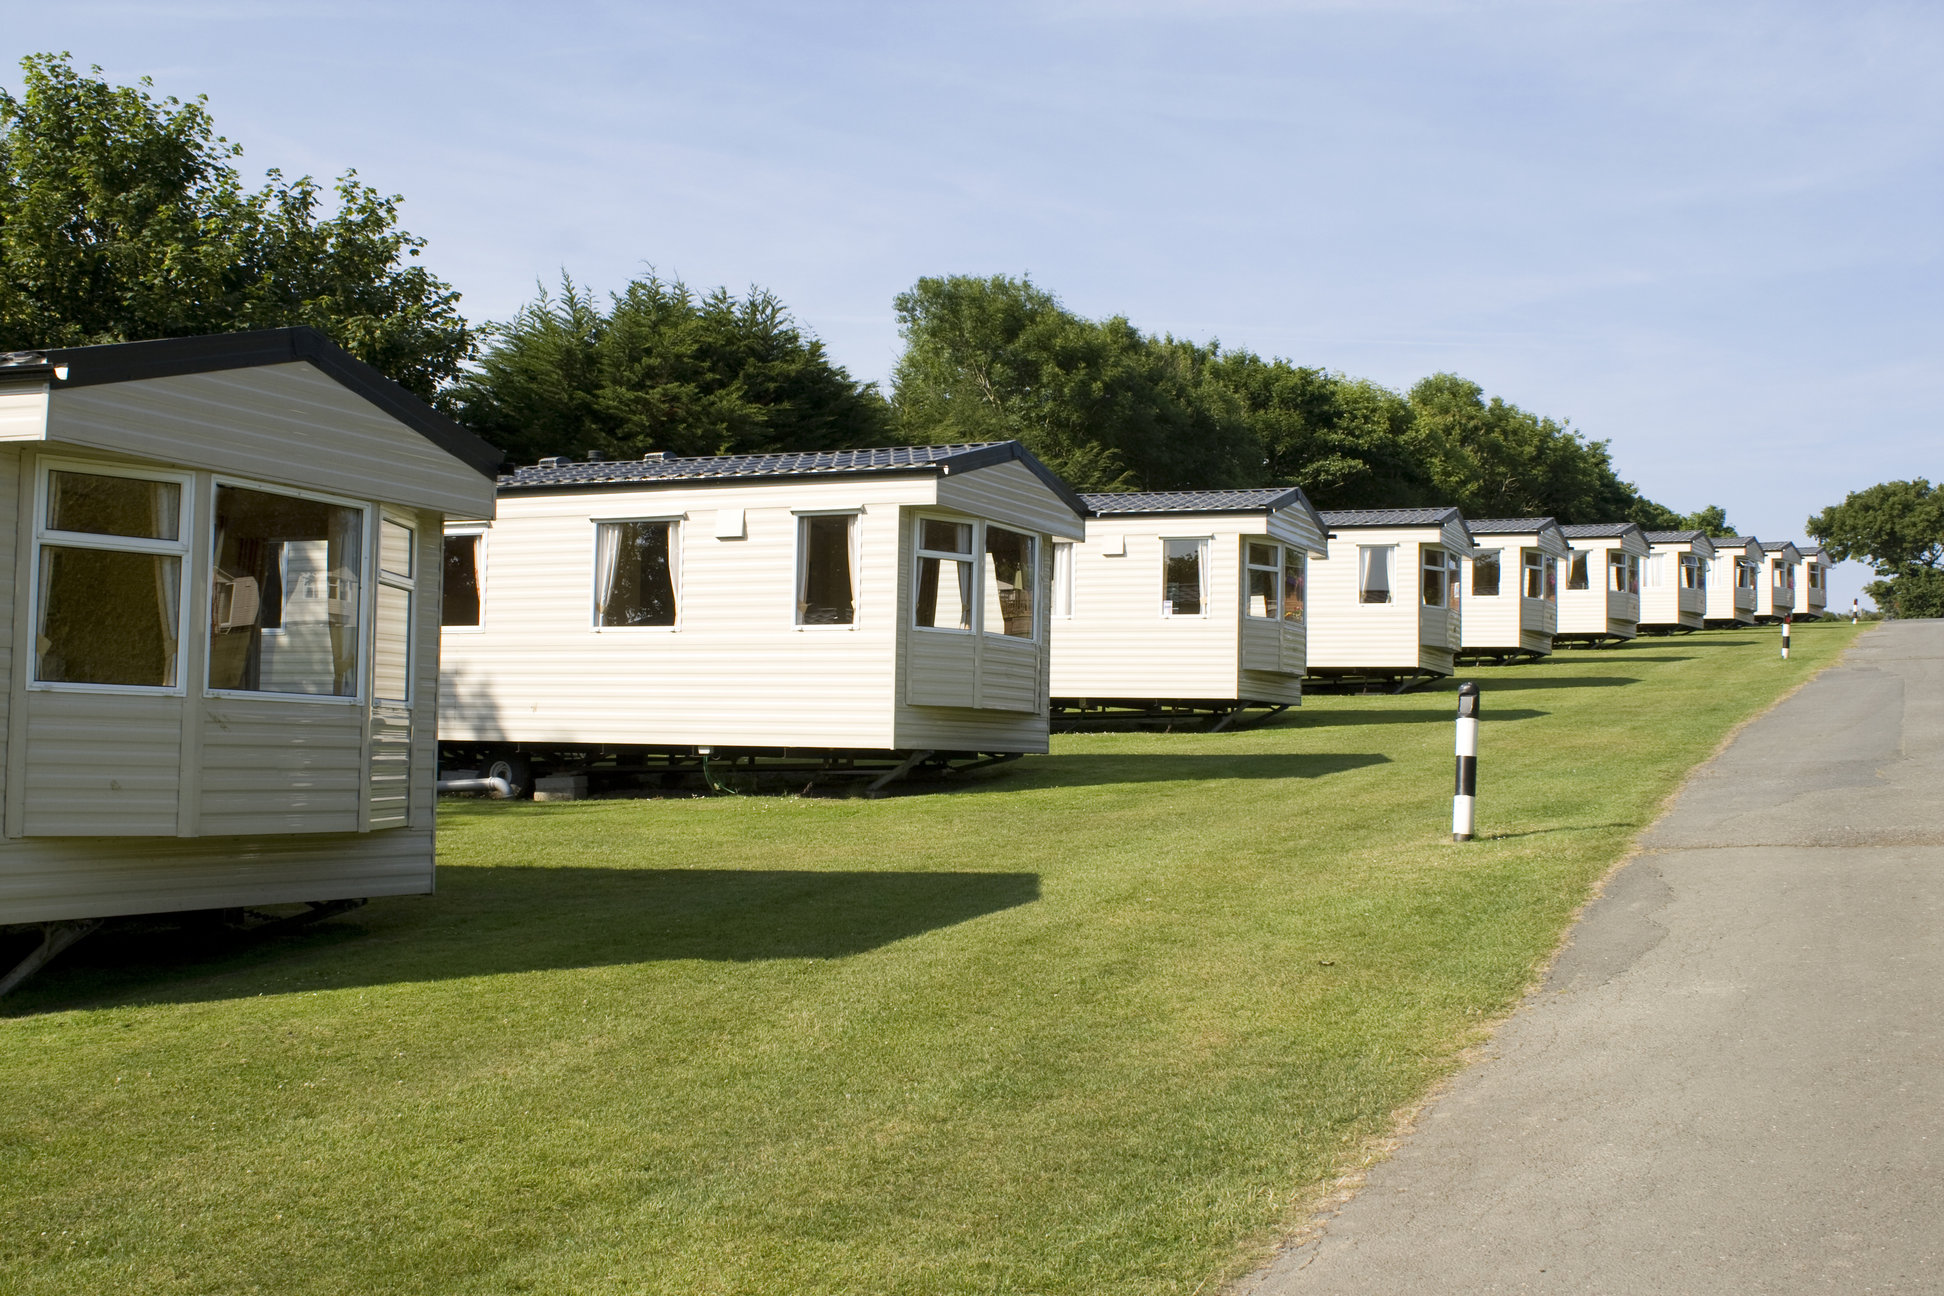 How Trailer Parks Trap Residents In A Cycle Of Poverty